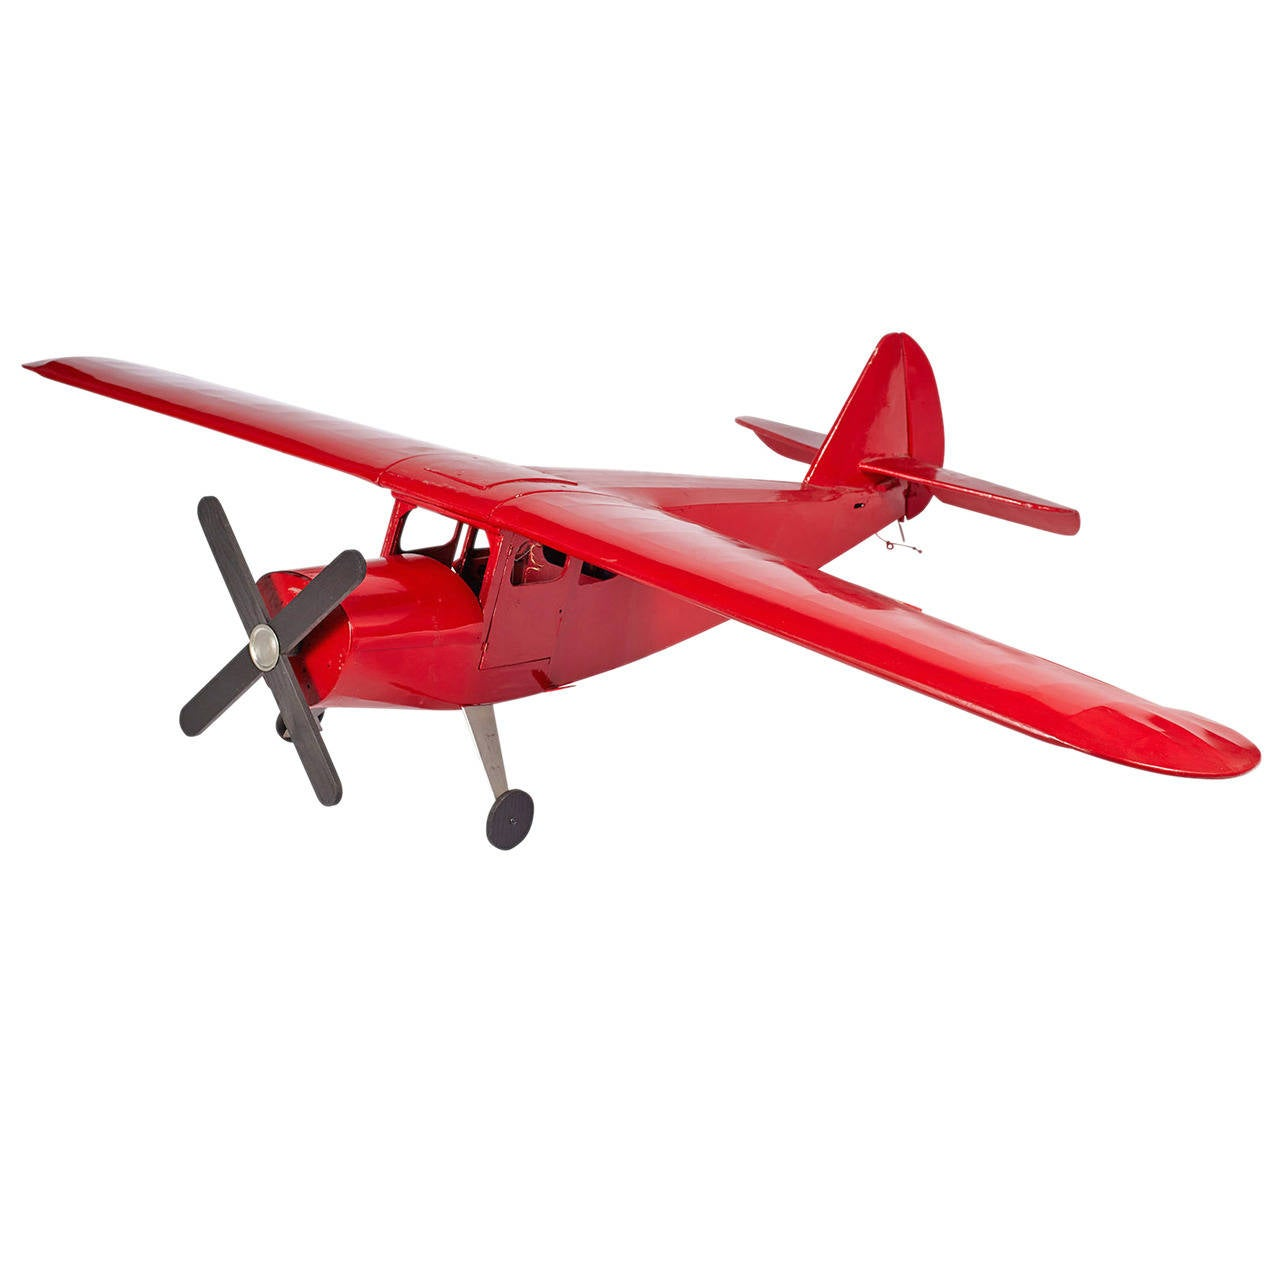 Large-Scale Red Airplane